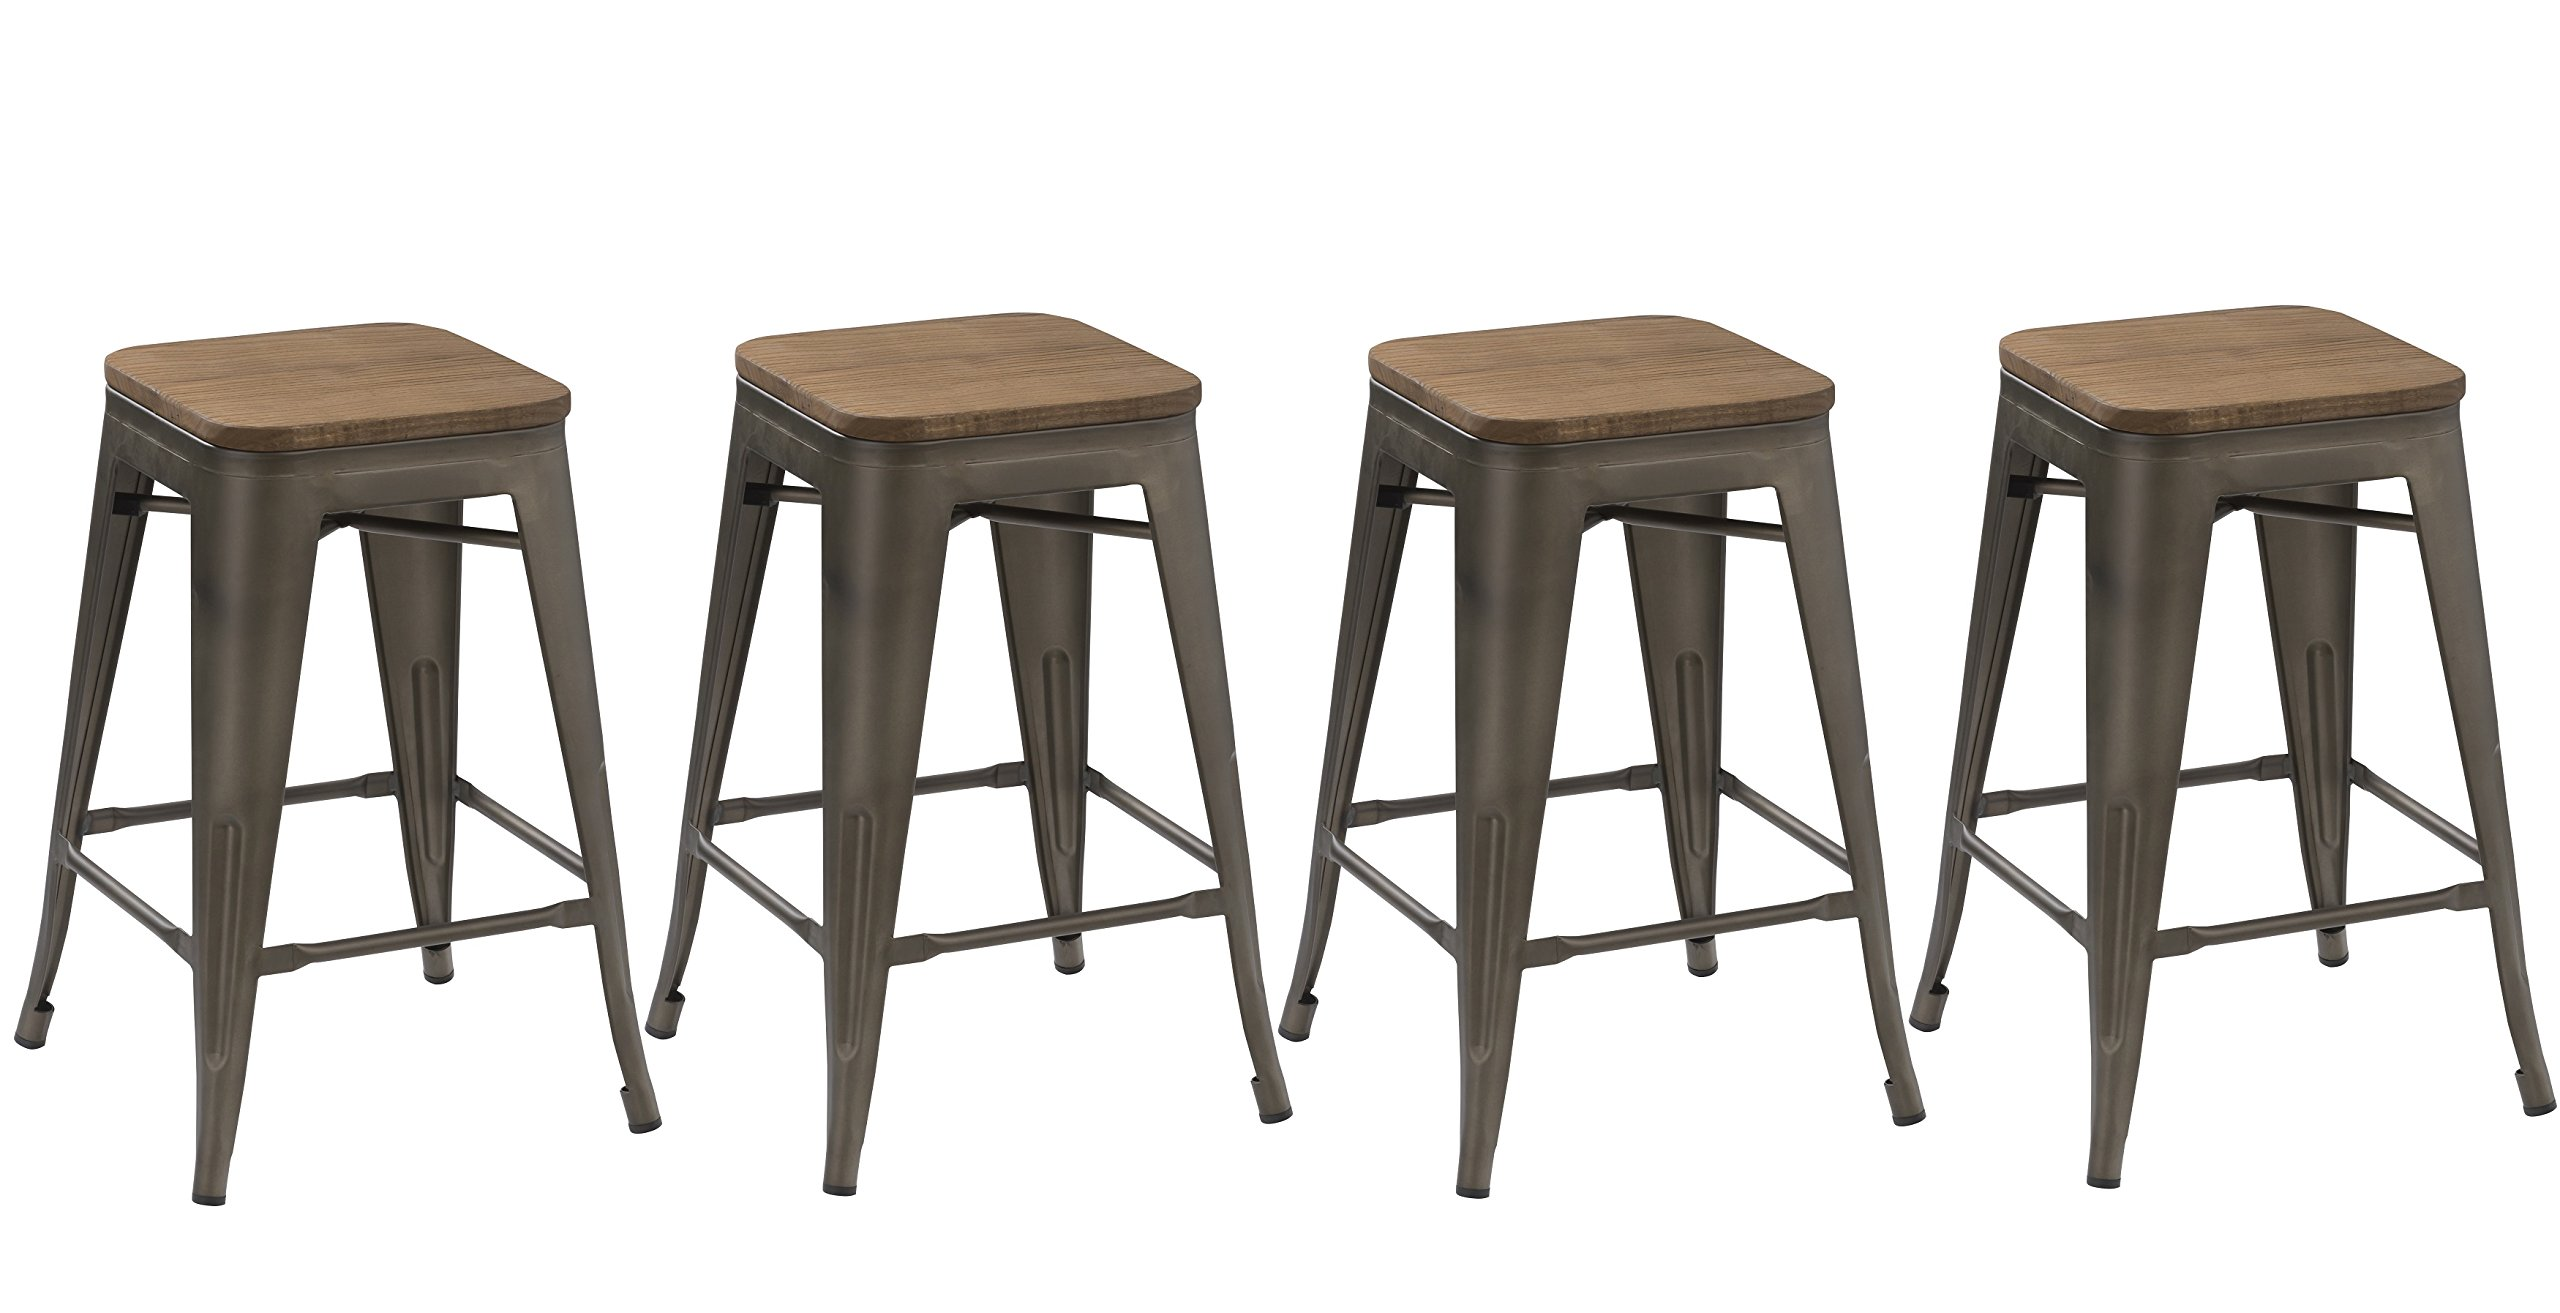 BTEXPERT 24-inch Industrial Metal Vintage Antique Copper Rustic Distressed Counter Height Bar Stool Modern - Handmade Wood top seat(Set of 4 barstool)